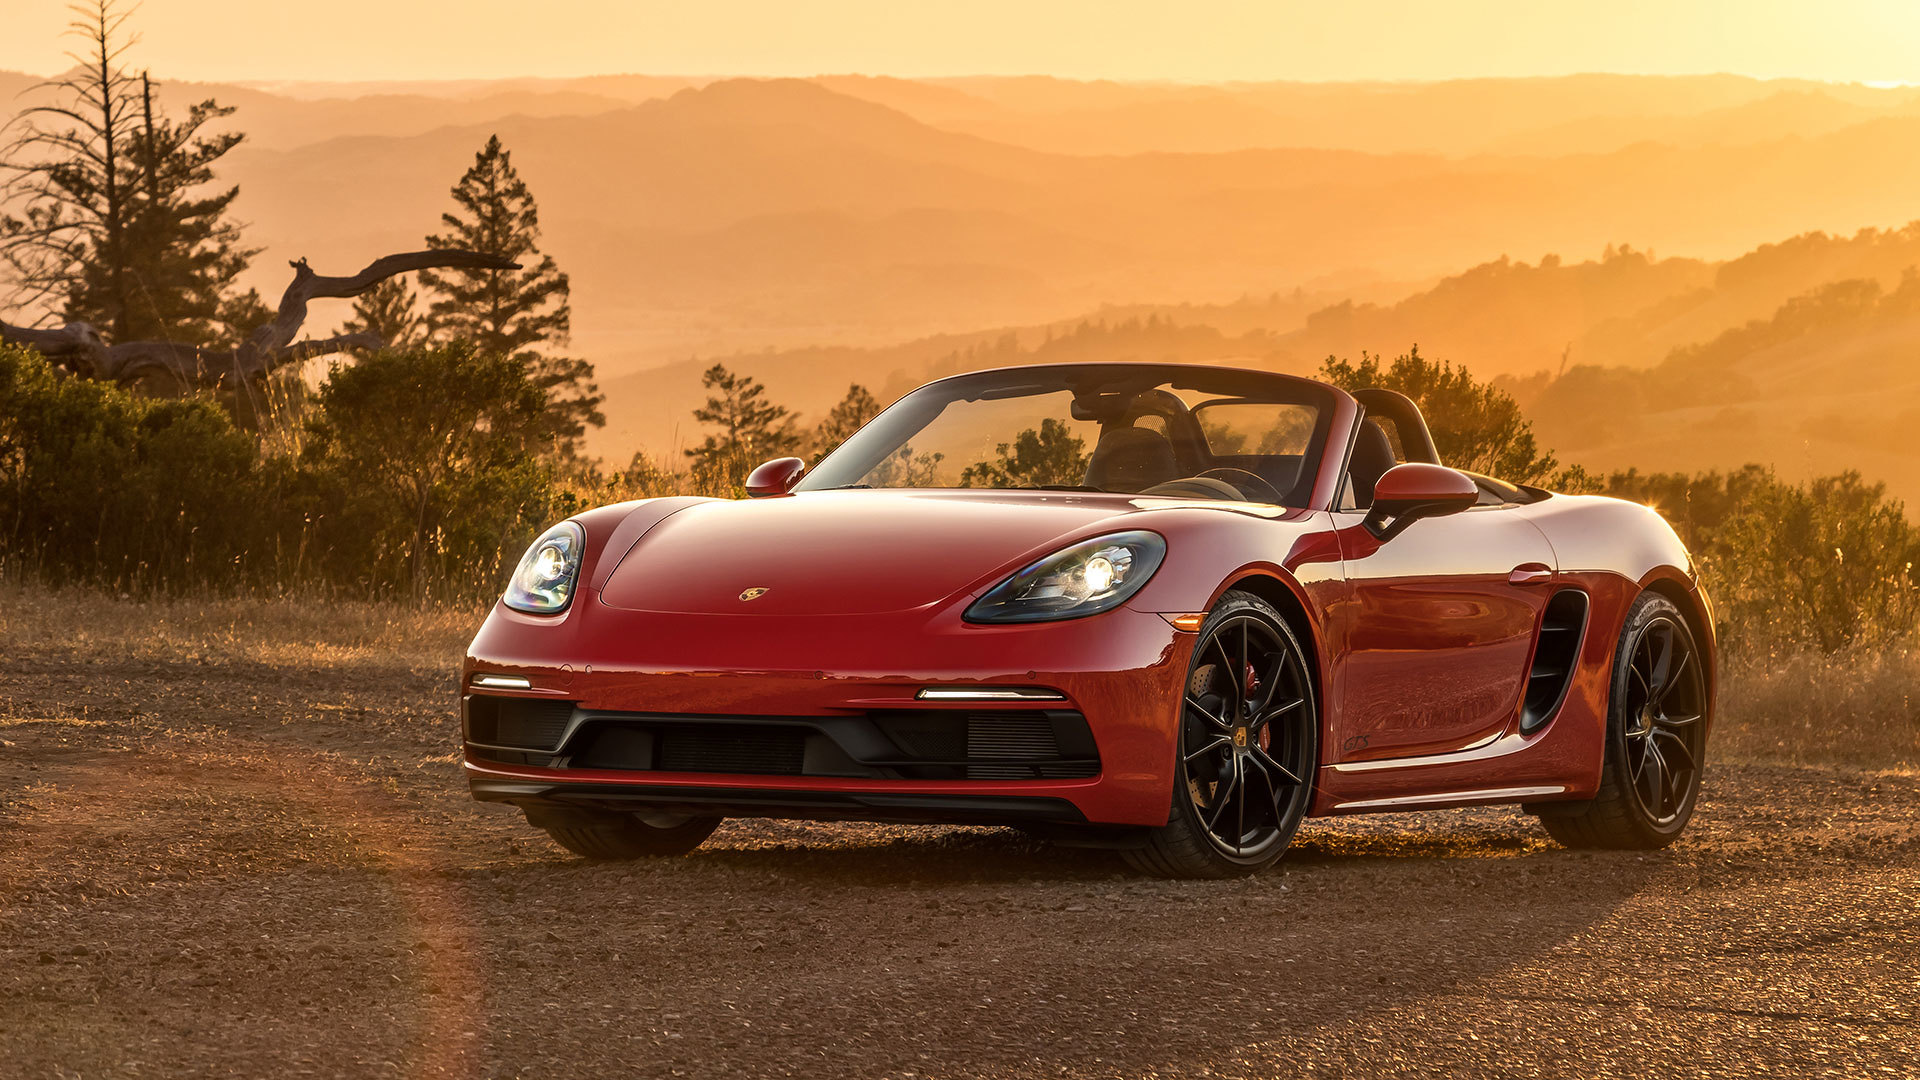 2018 Porsche 718 Boxster Gts First Drive Keeping Manuals Alive